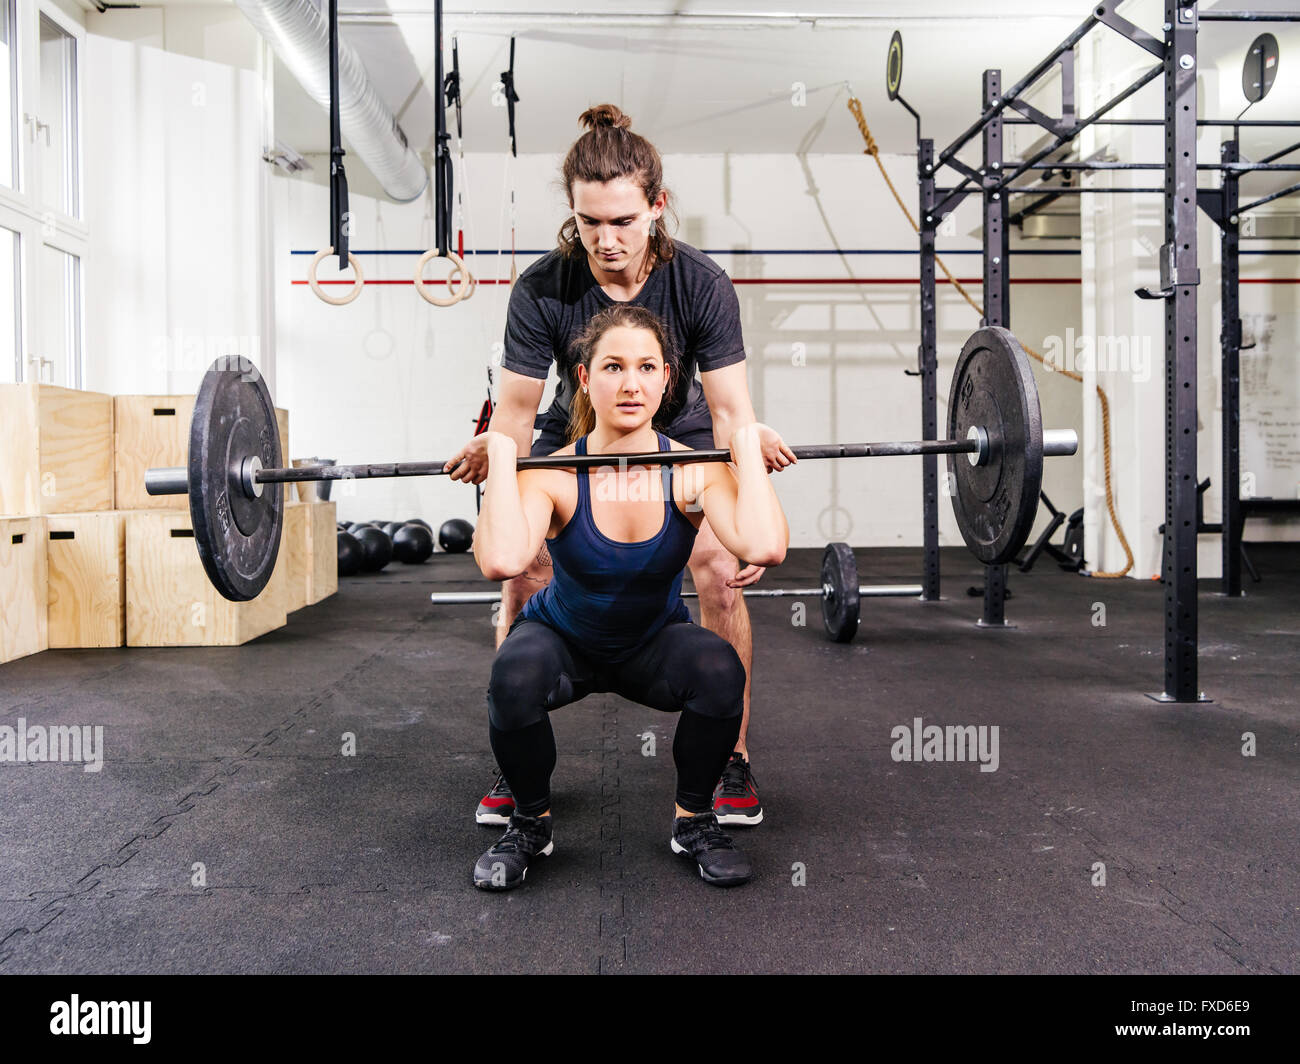 Photo of a young woman at a crossfit gym doing squats while her instructor watches from behind. - Stock Image